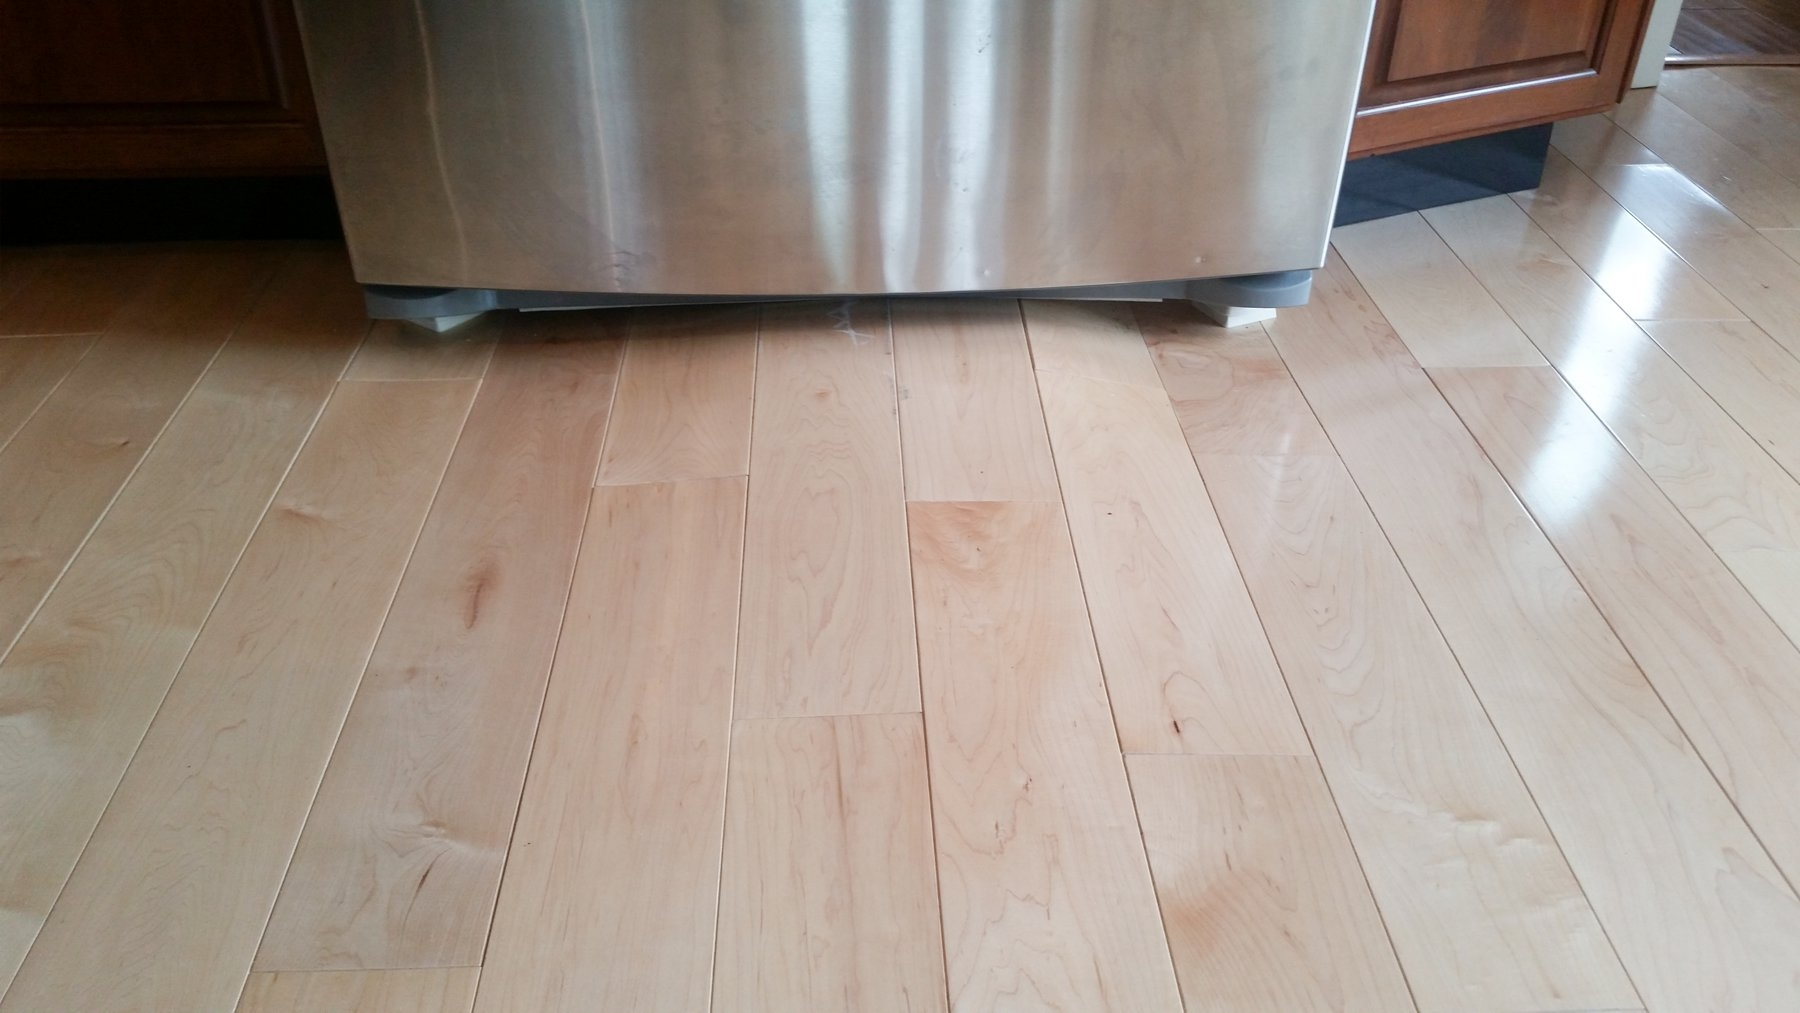 Fixing Wood Floors Water Damage